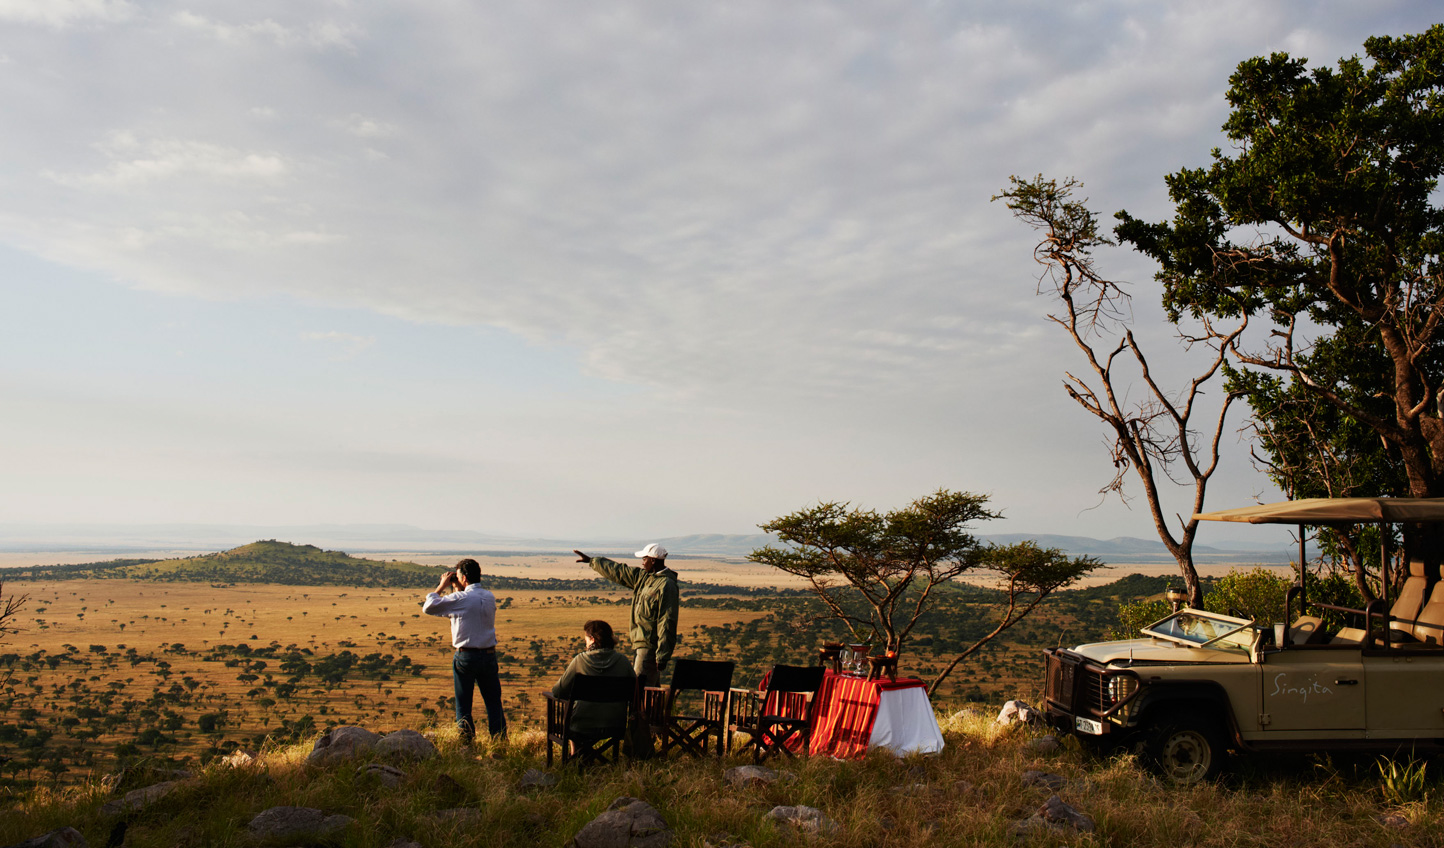 Spend your days out in search of the Big Five